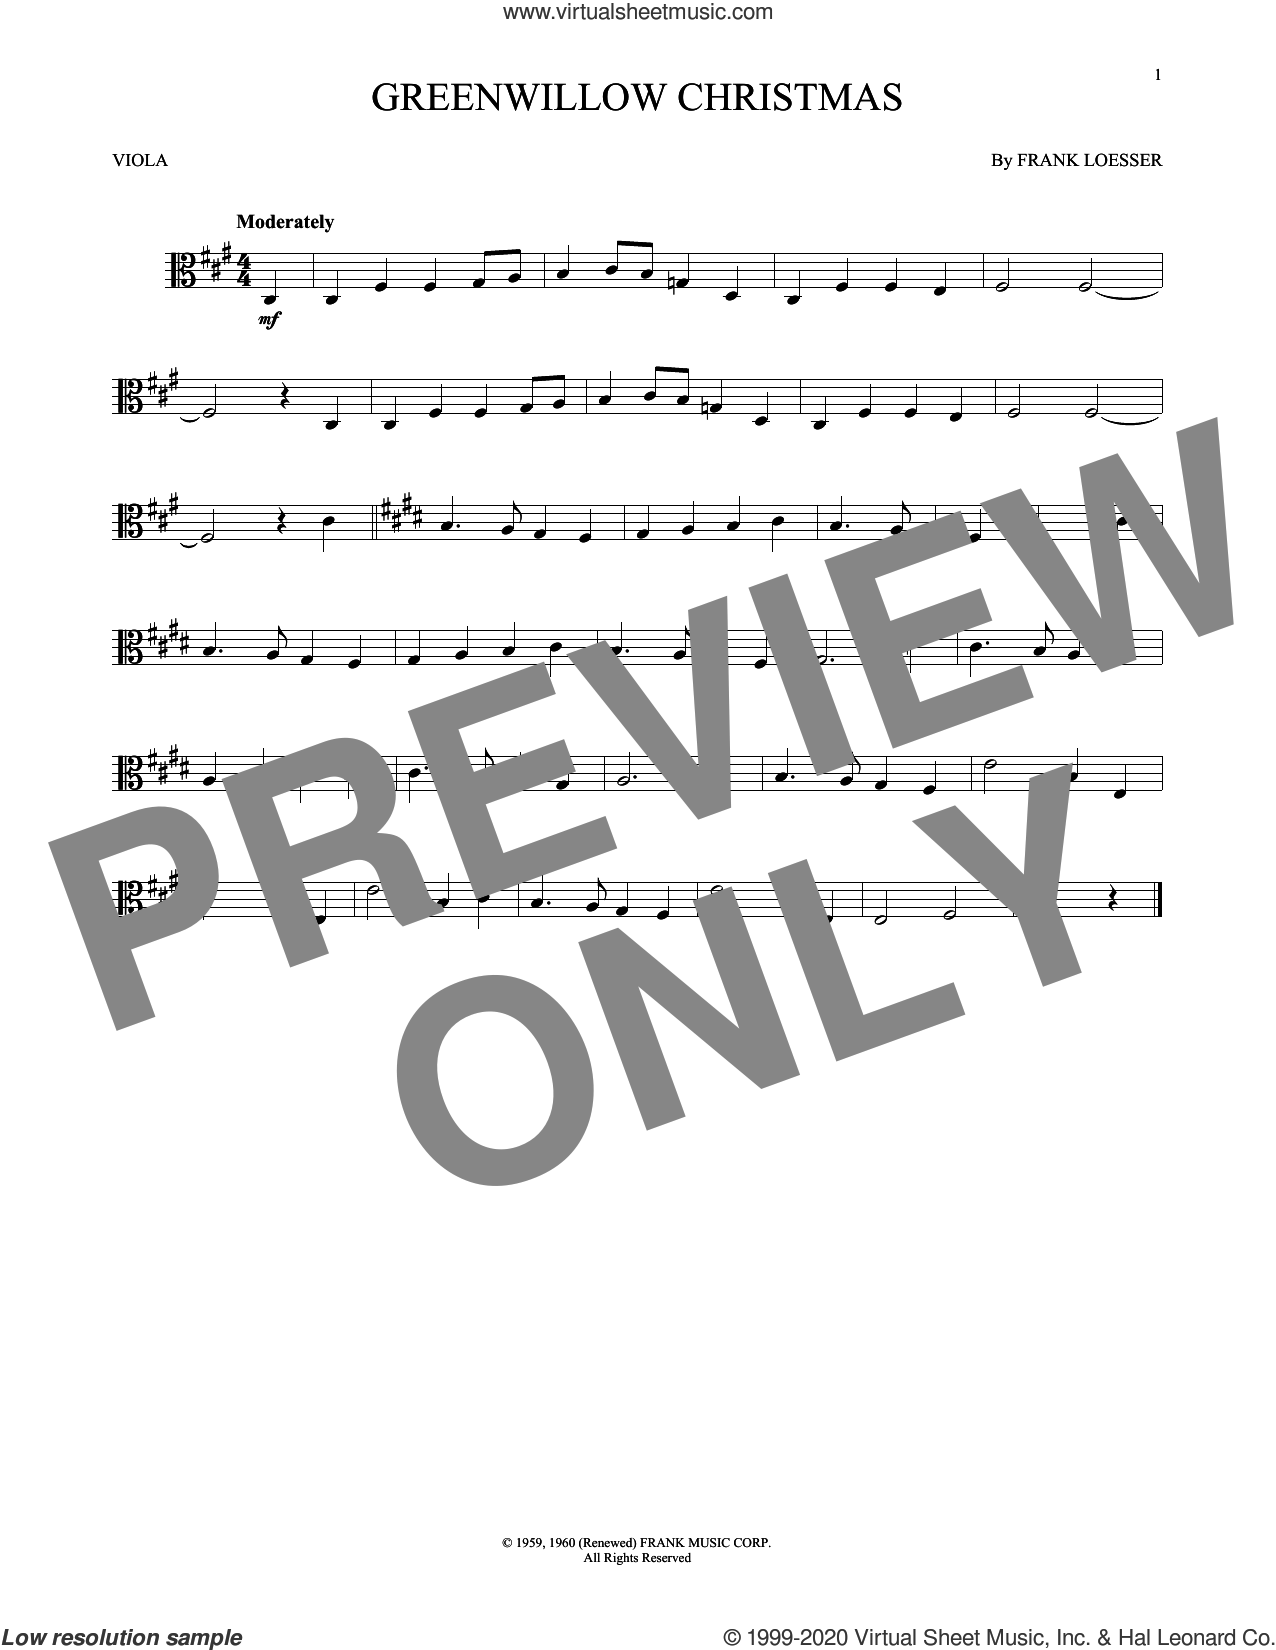 Greenwillow Christmas sheet music for viola solo by Frank Loesser, intermediate skill level